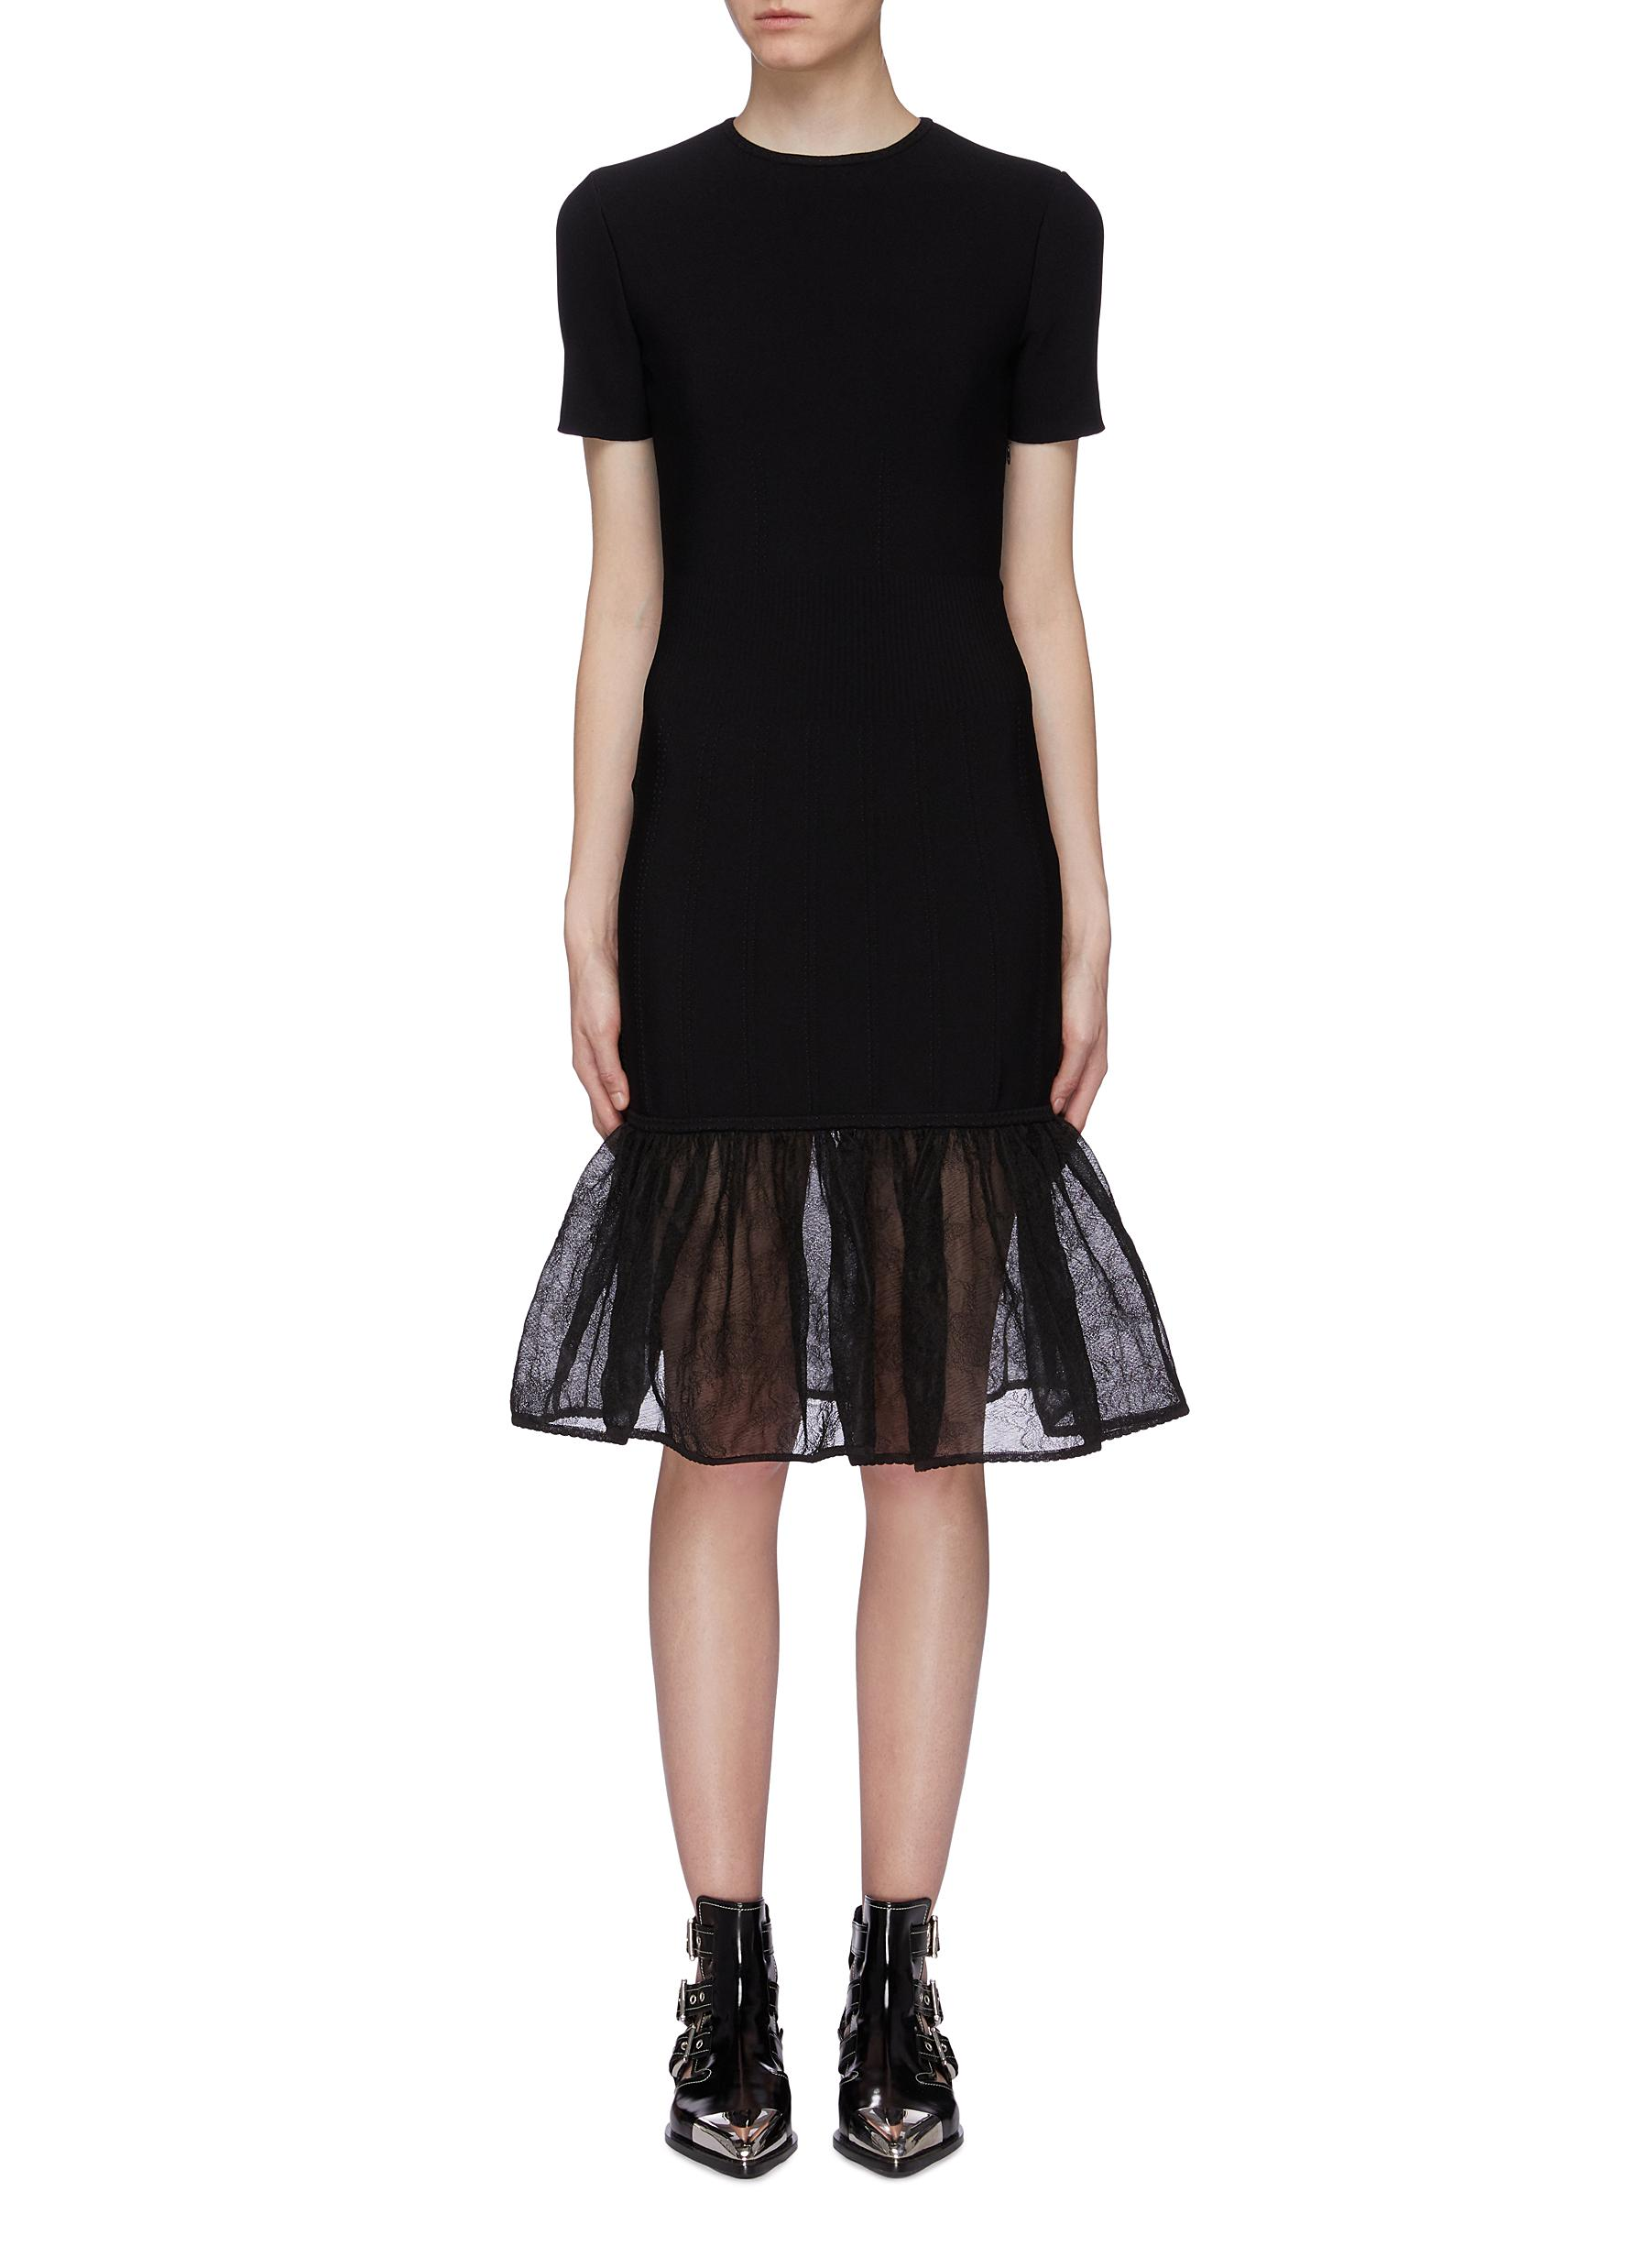 Sheer peplum dress by Alexander Mcqueen